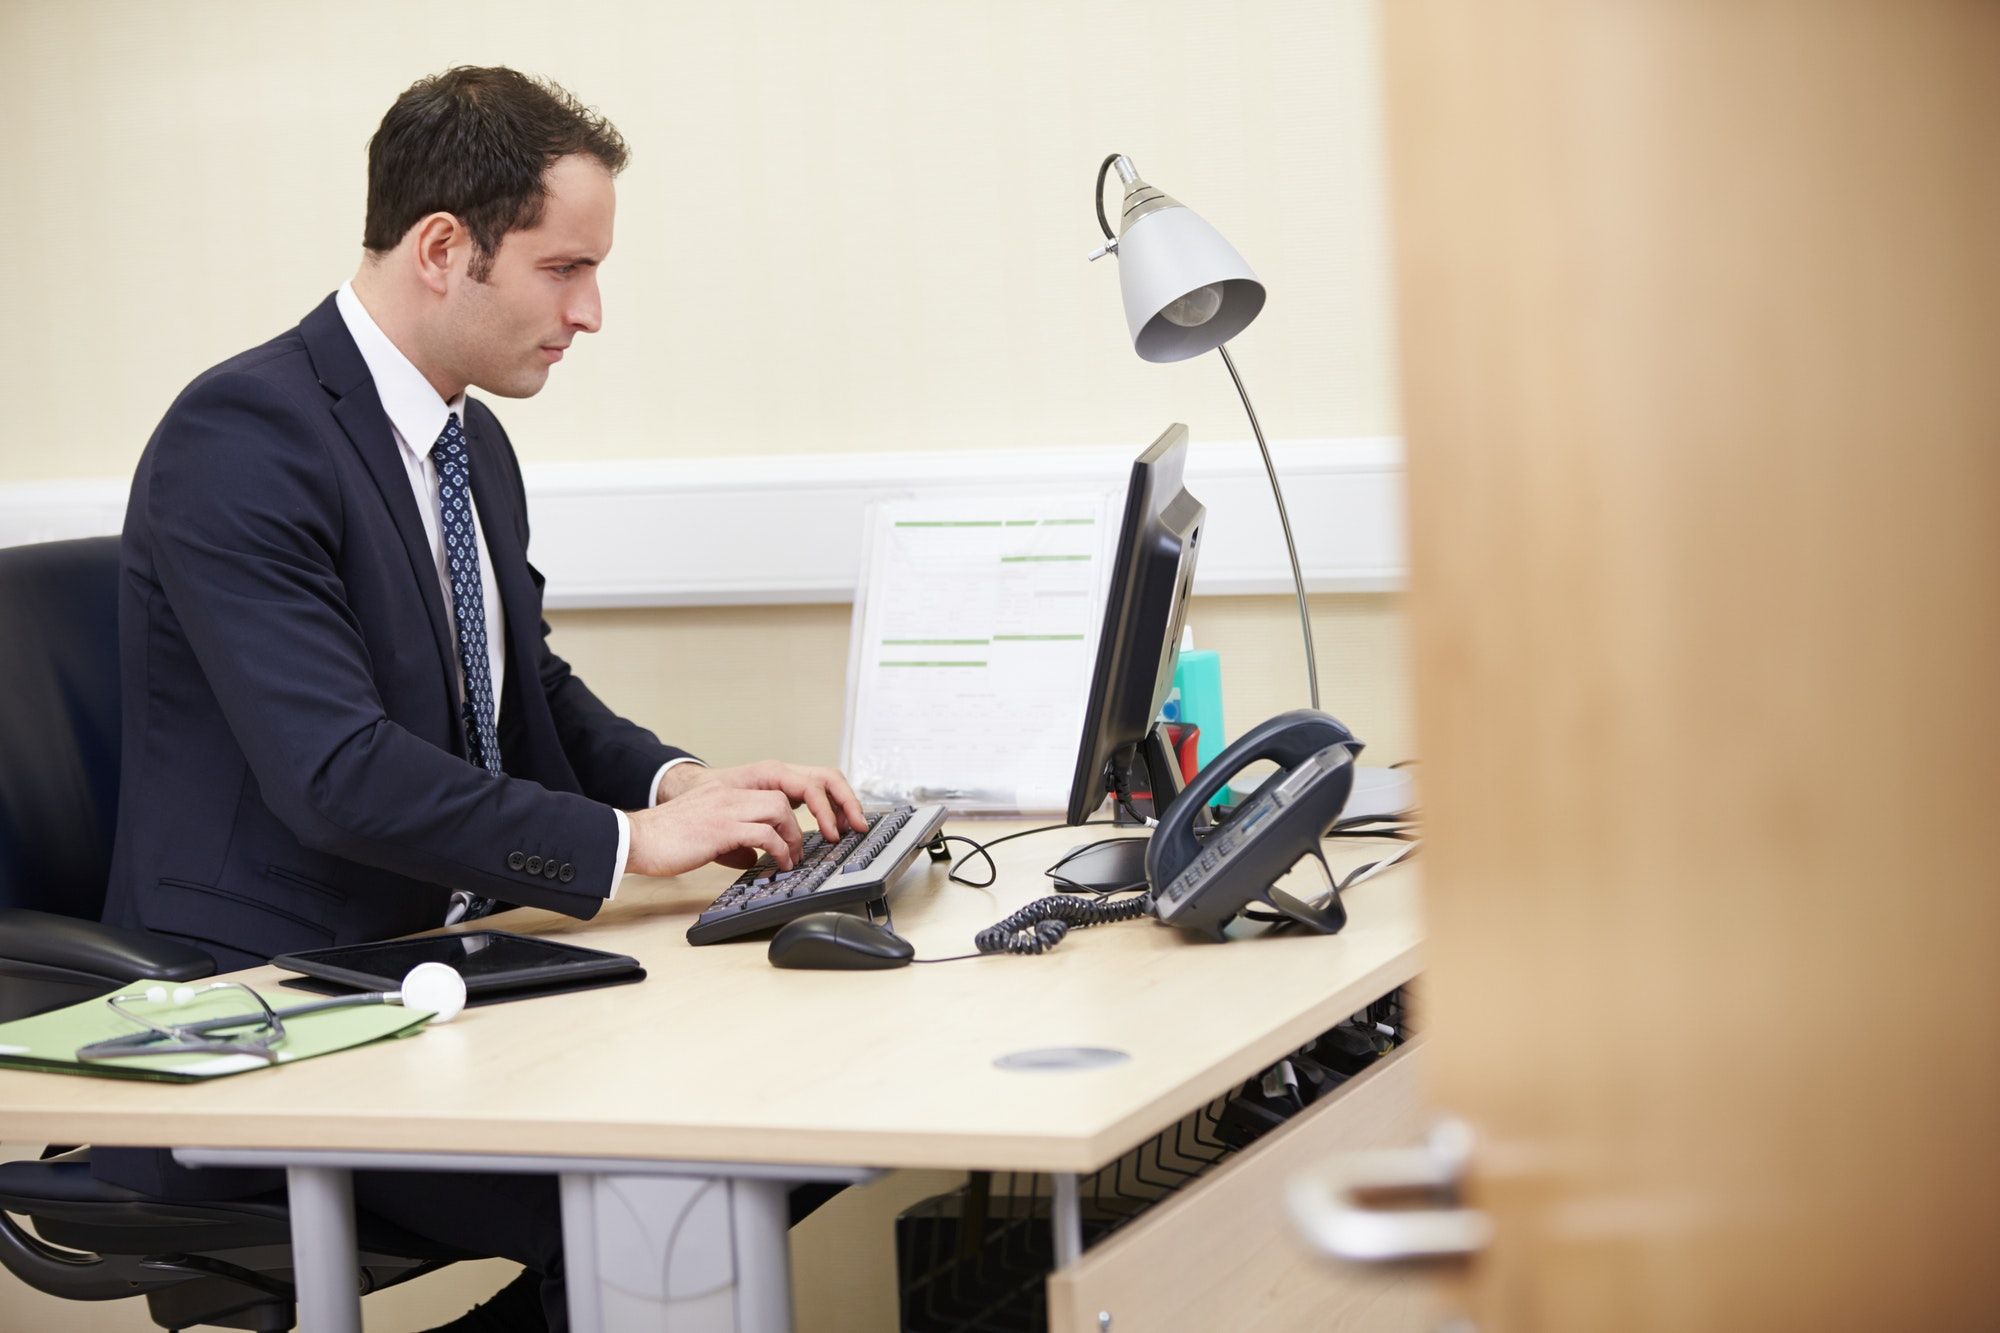 hire an it consultant for your business